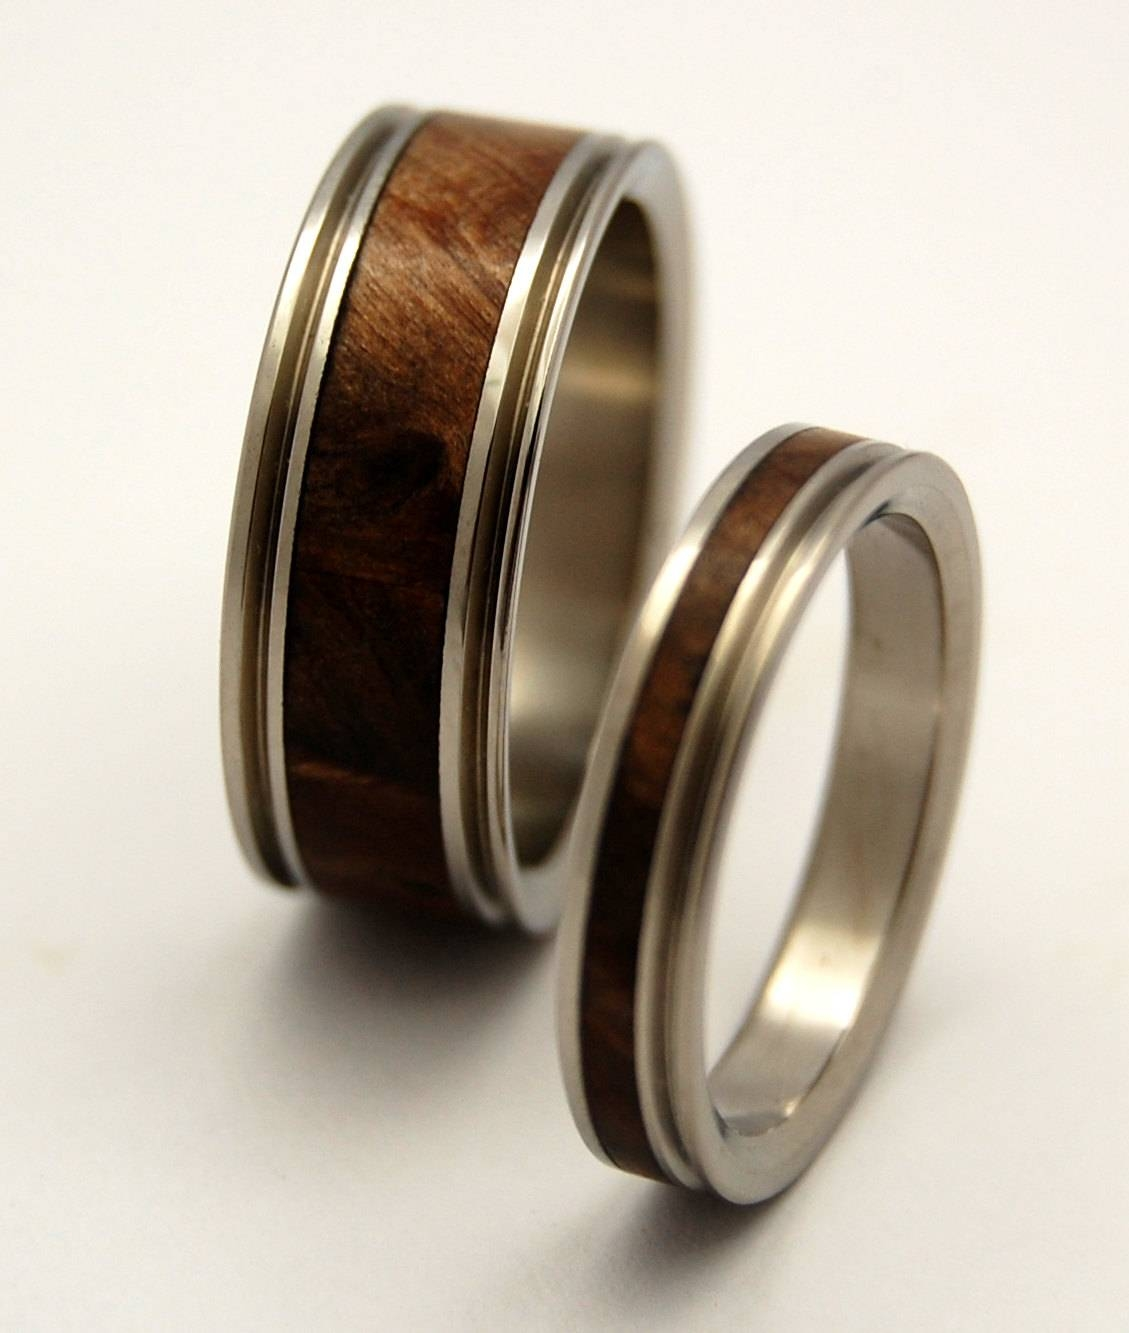 Wooden Wedding Rings Titanium Ring Titanium Wedding Rings In Mens Wooden Wedding Bands (View 15 of 15)